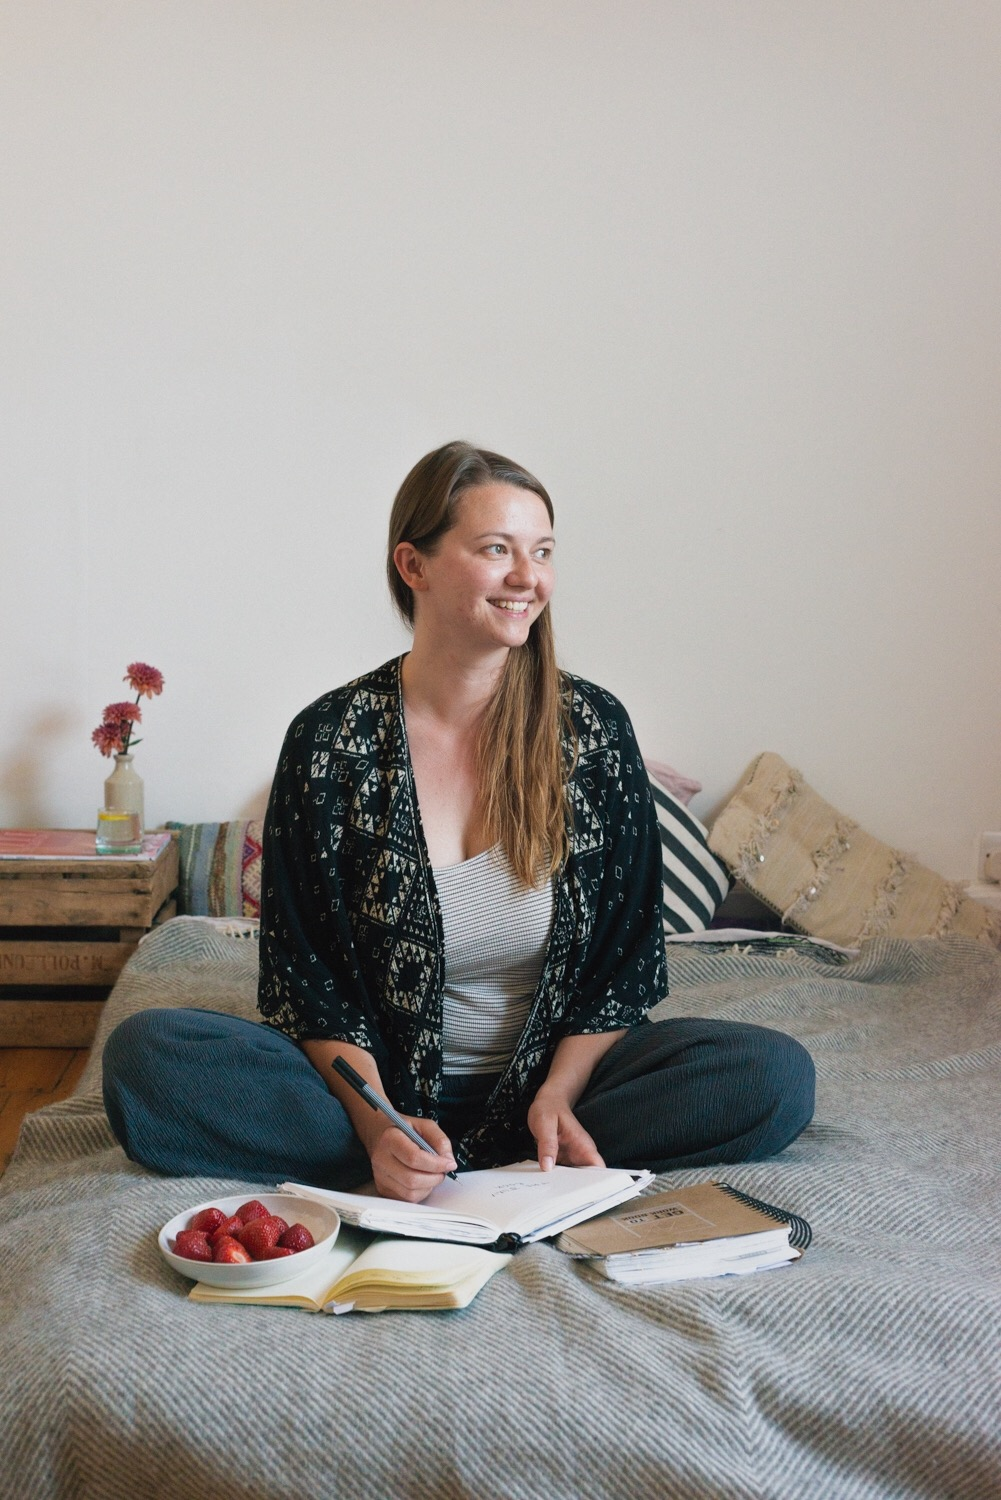 Easing ourselves into September. 7 realistic and totally achievable ideas for self care after a long, hot summer. Hannahbullivant.com